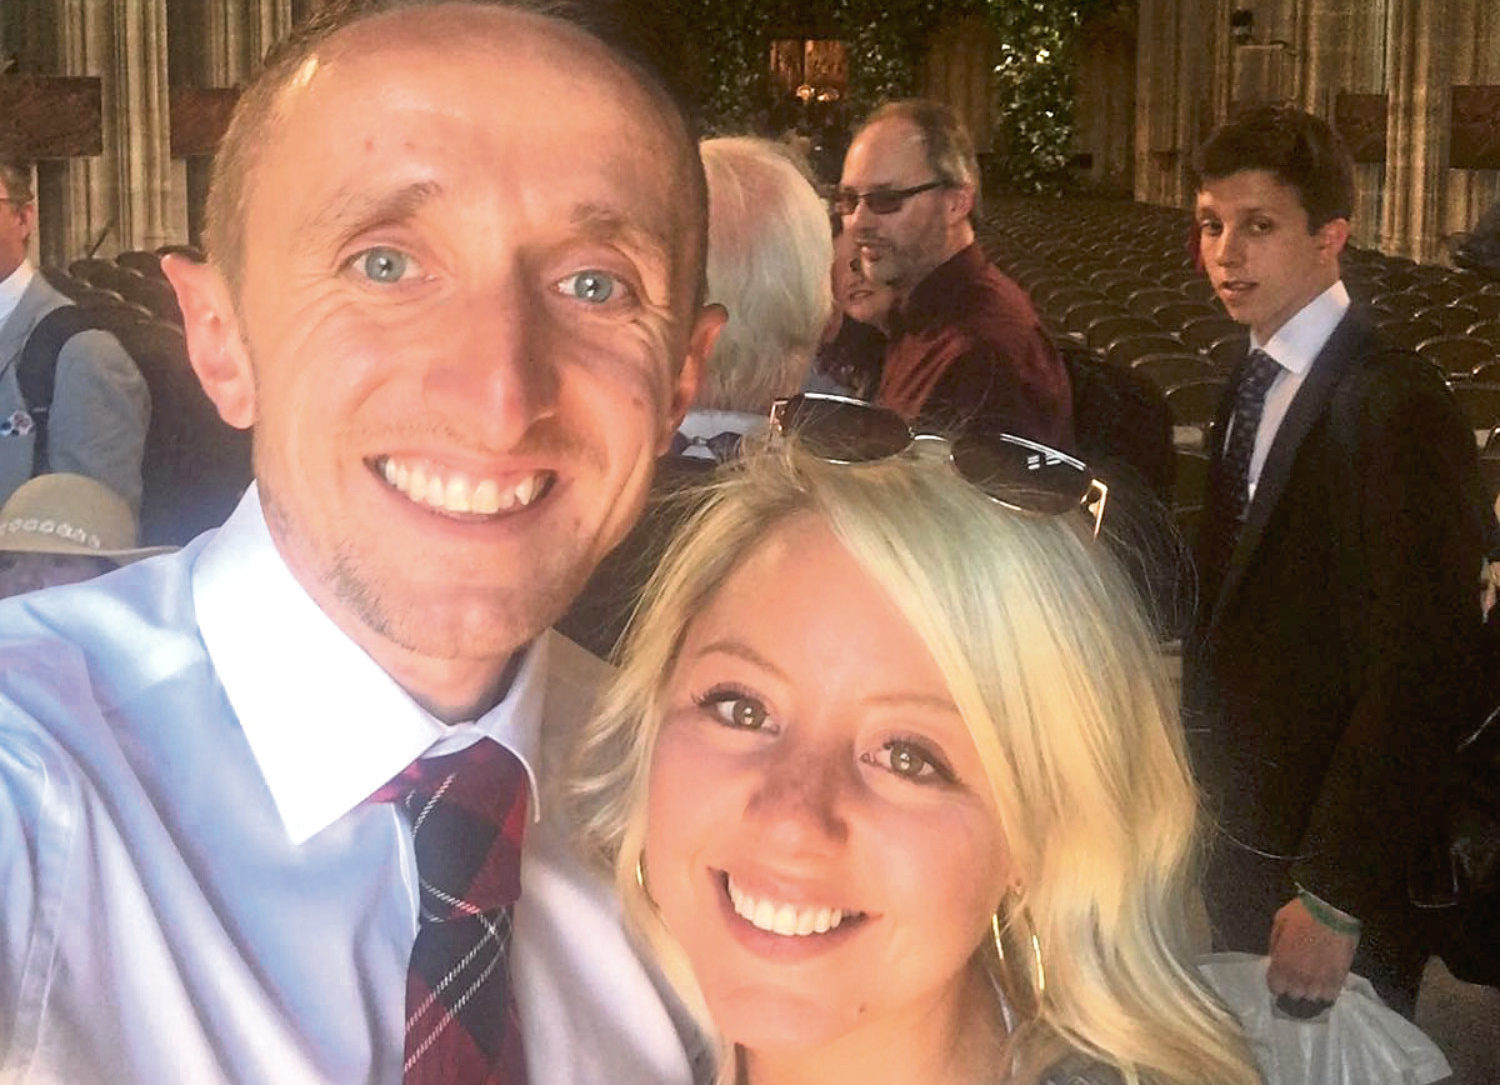 Myles Edwards and friend Steph Lloyd were at the Royal Wedding